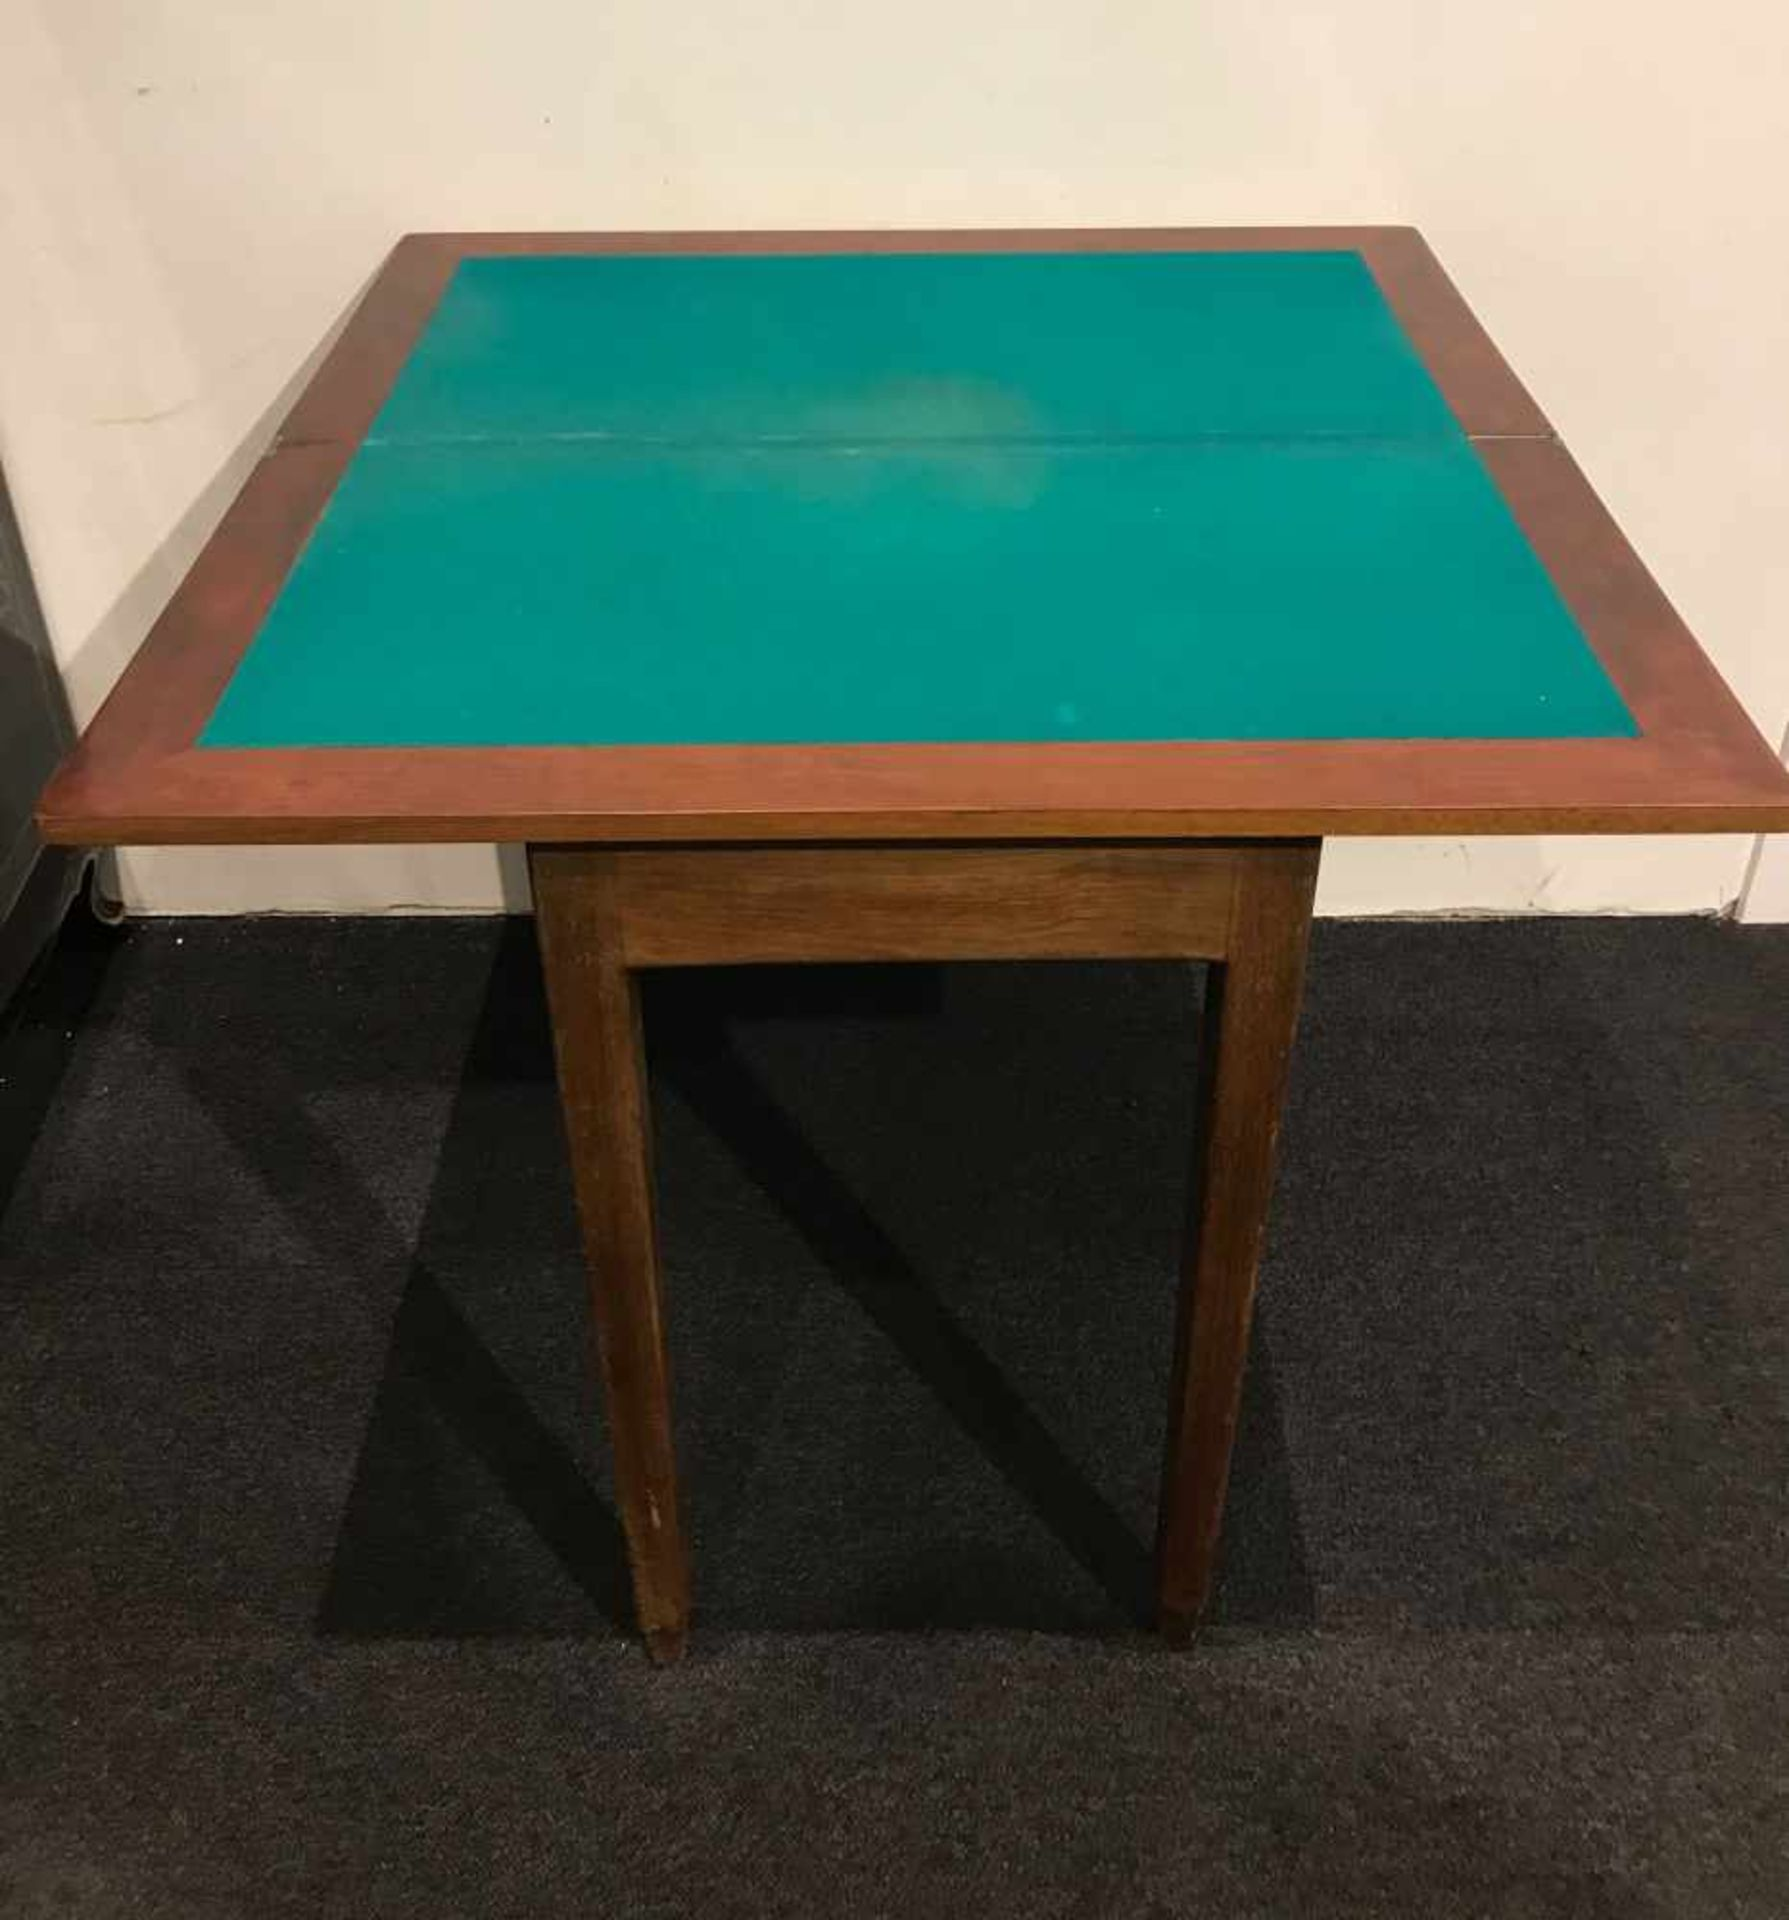 Los 104 - Card table card table H 84 L 84 x 84 cm (open)